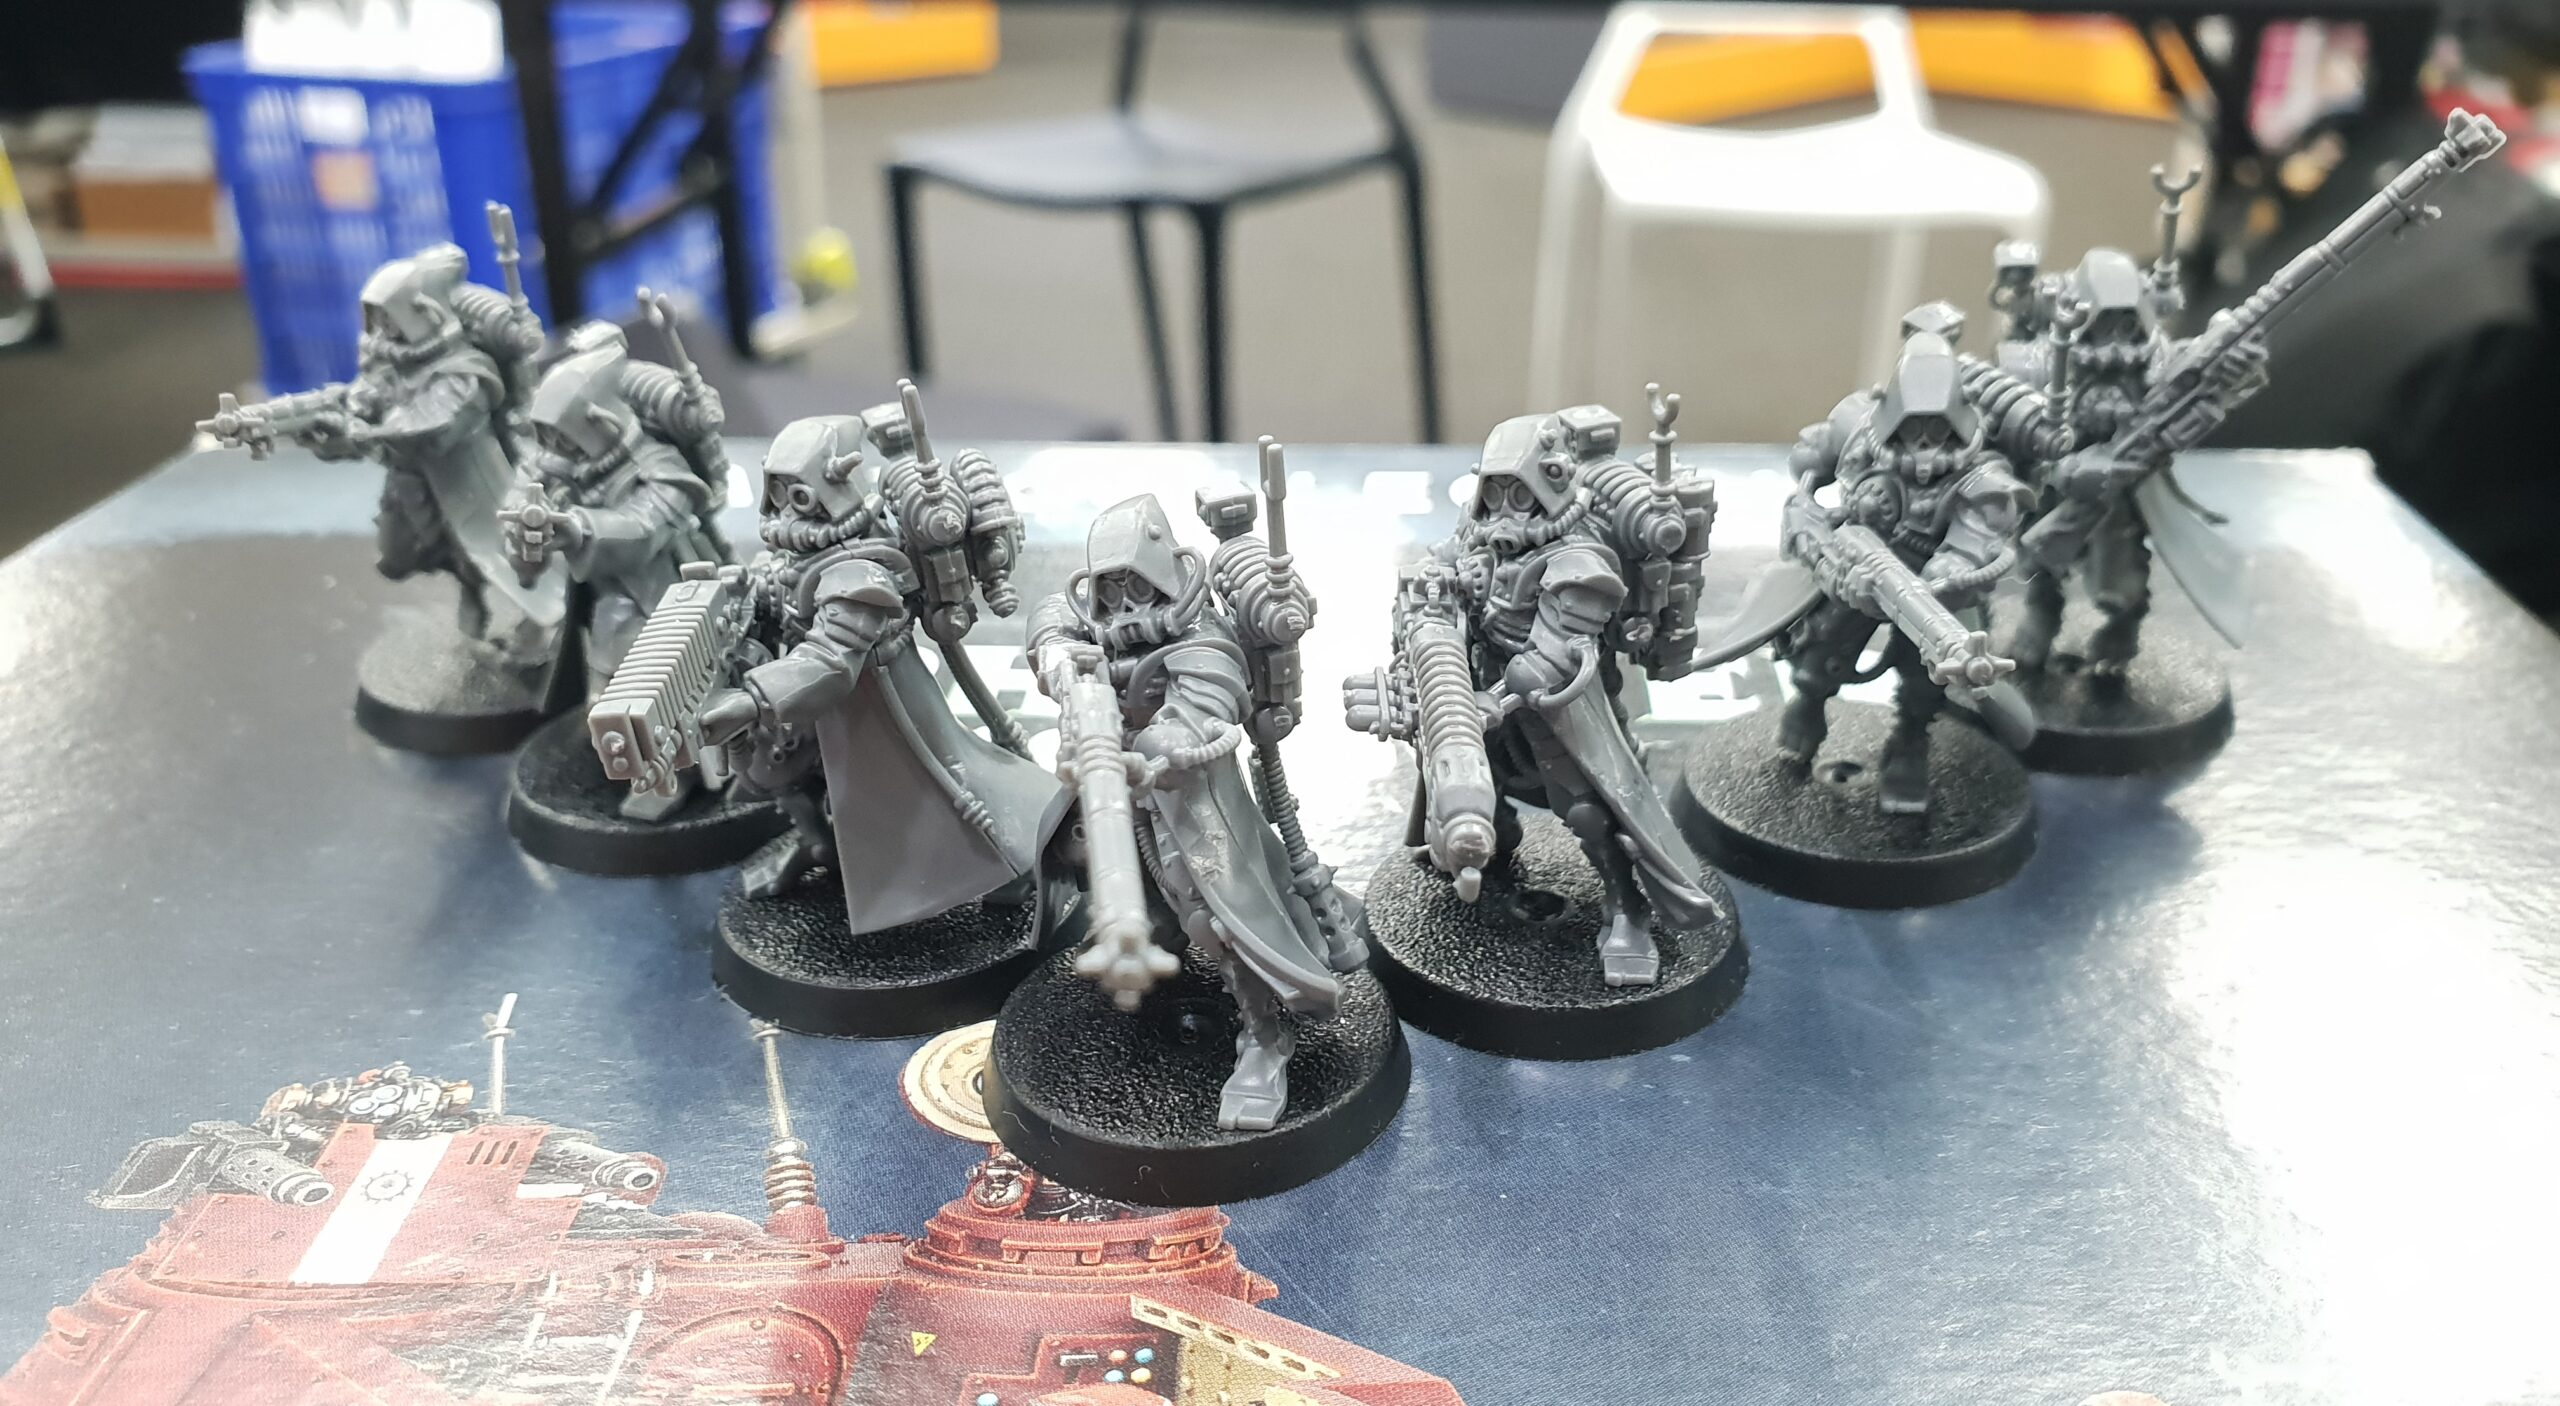 Warhammer 40k – Kora's Awesome AdMech – Work in Progress – July 27, 2020